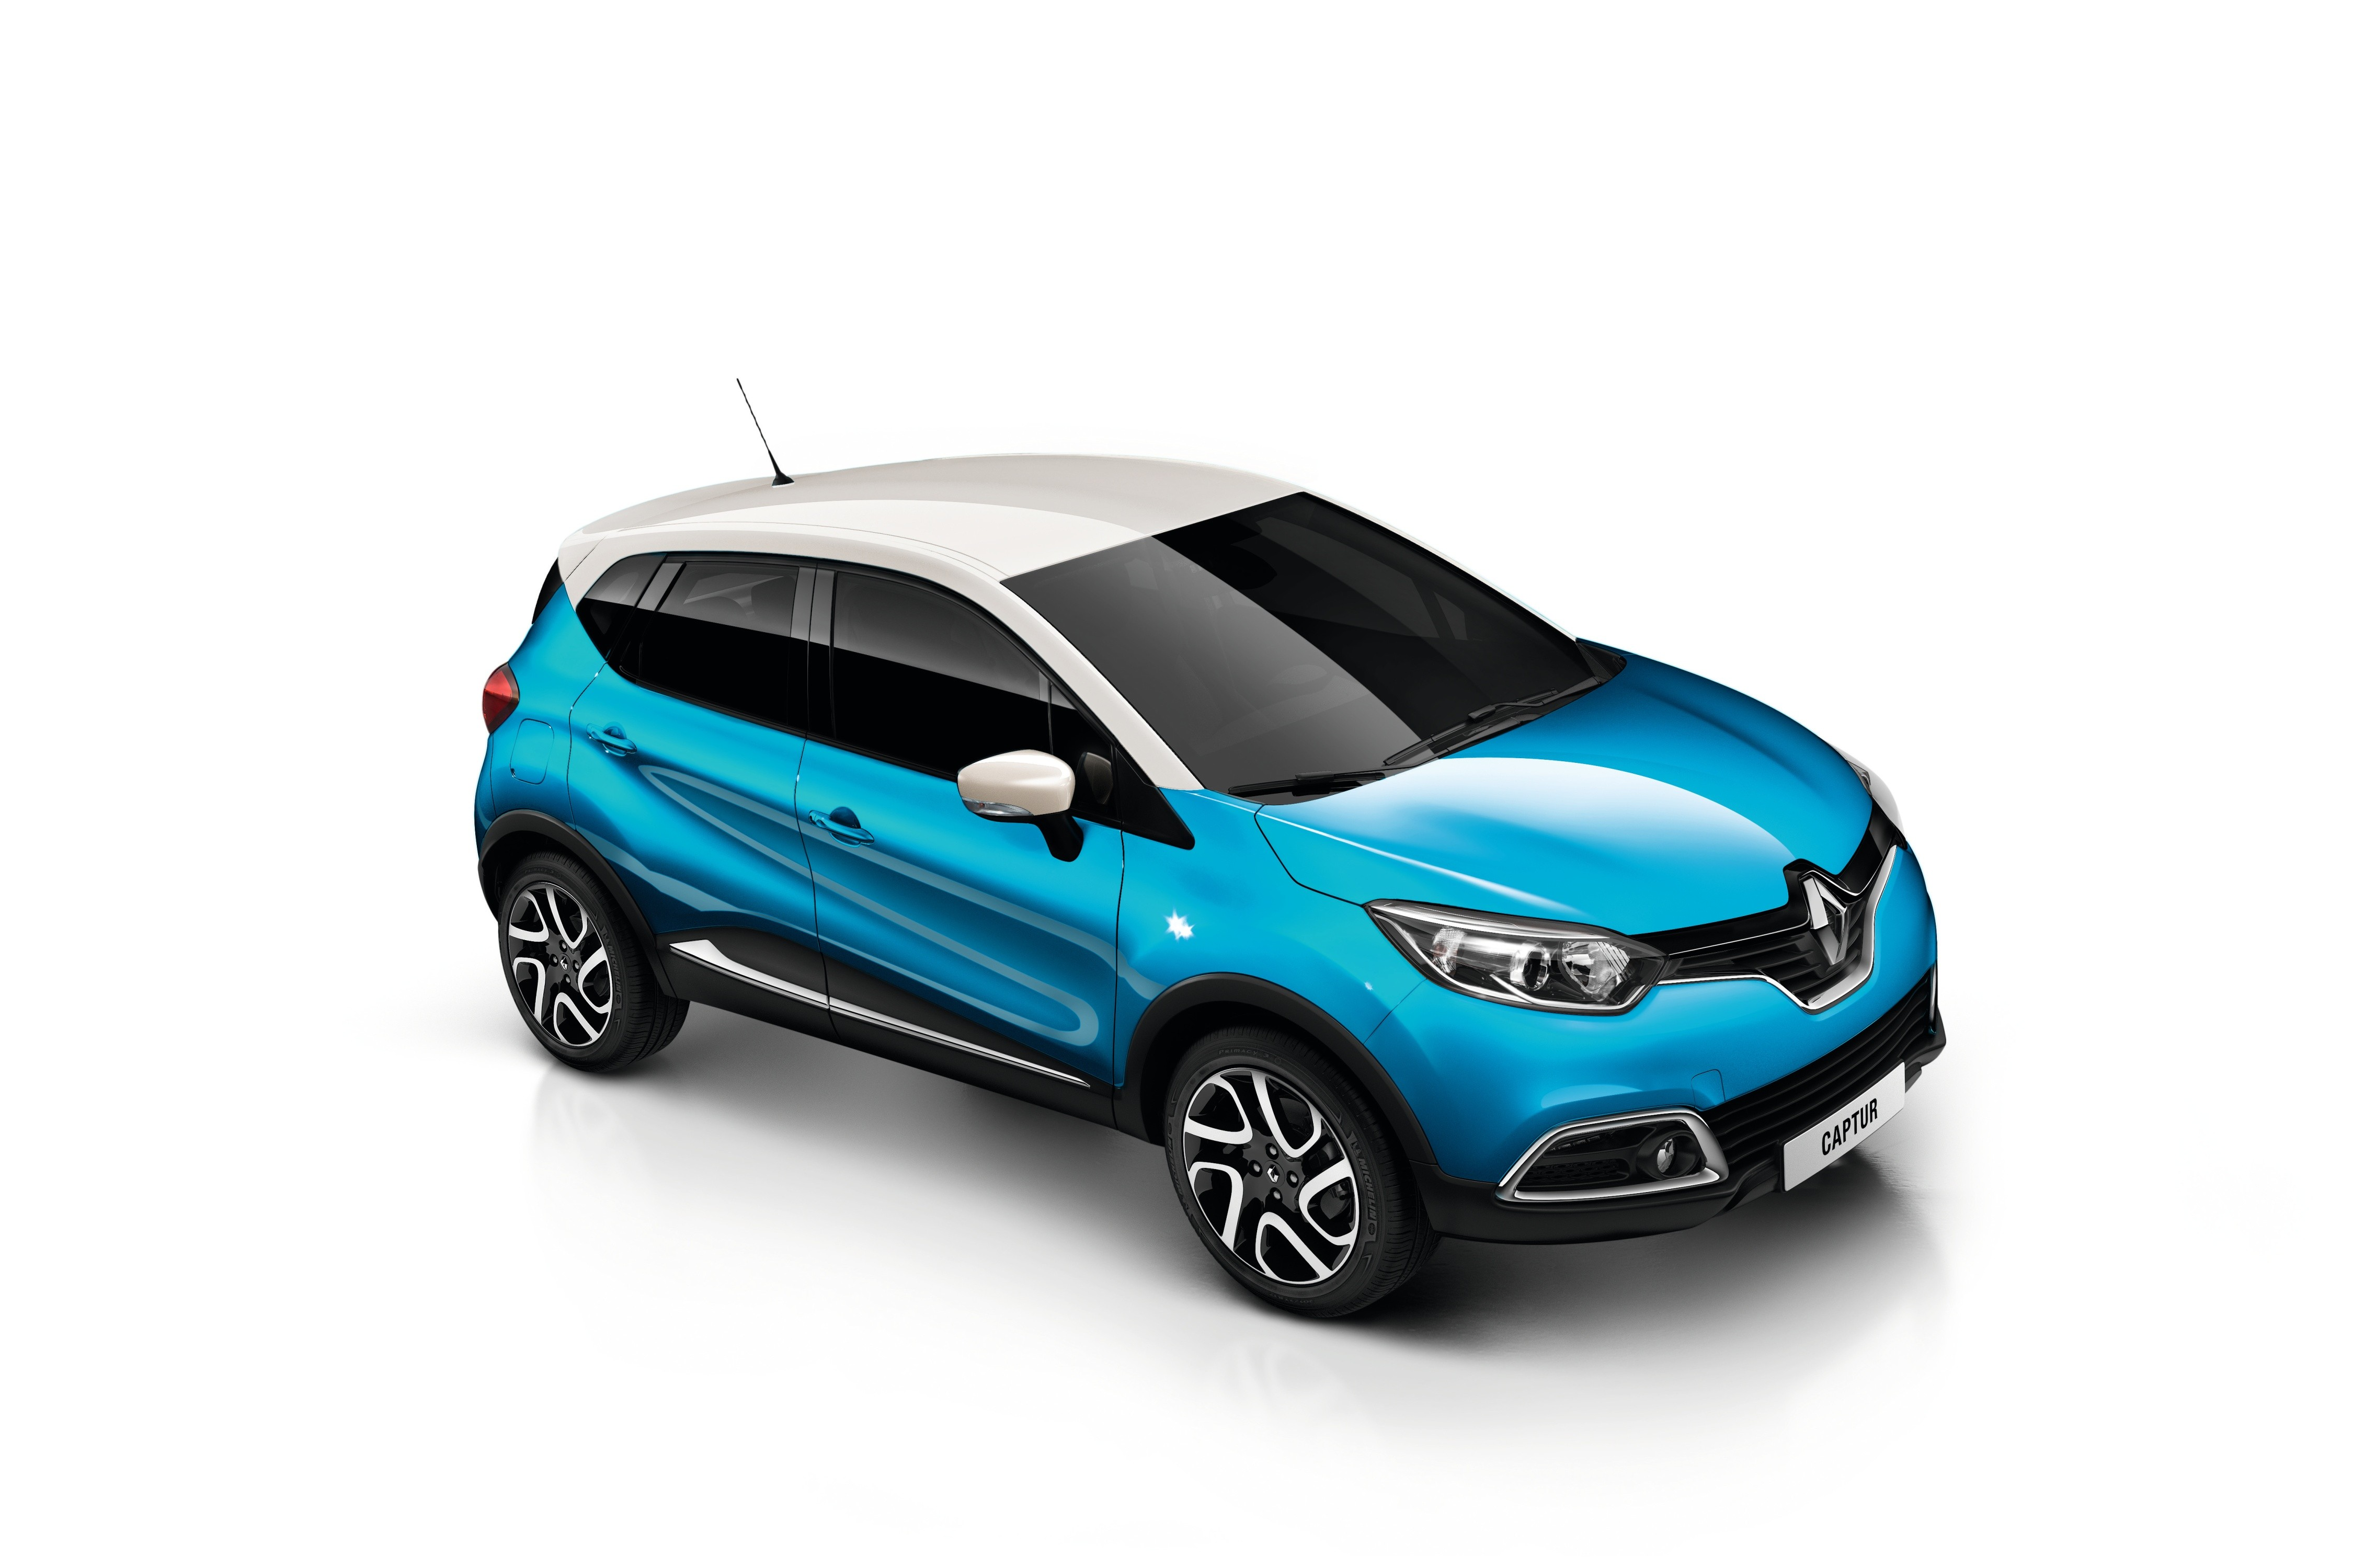 The Renault Captur Preview – A new Urban Crossover in Malaysia